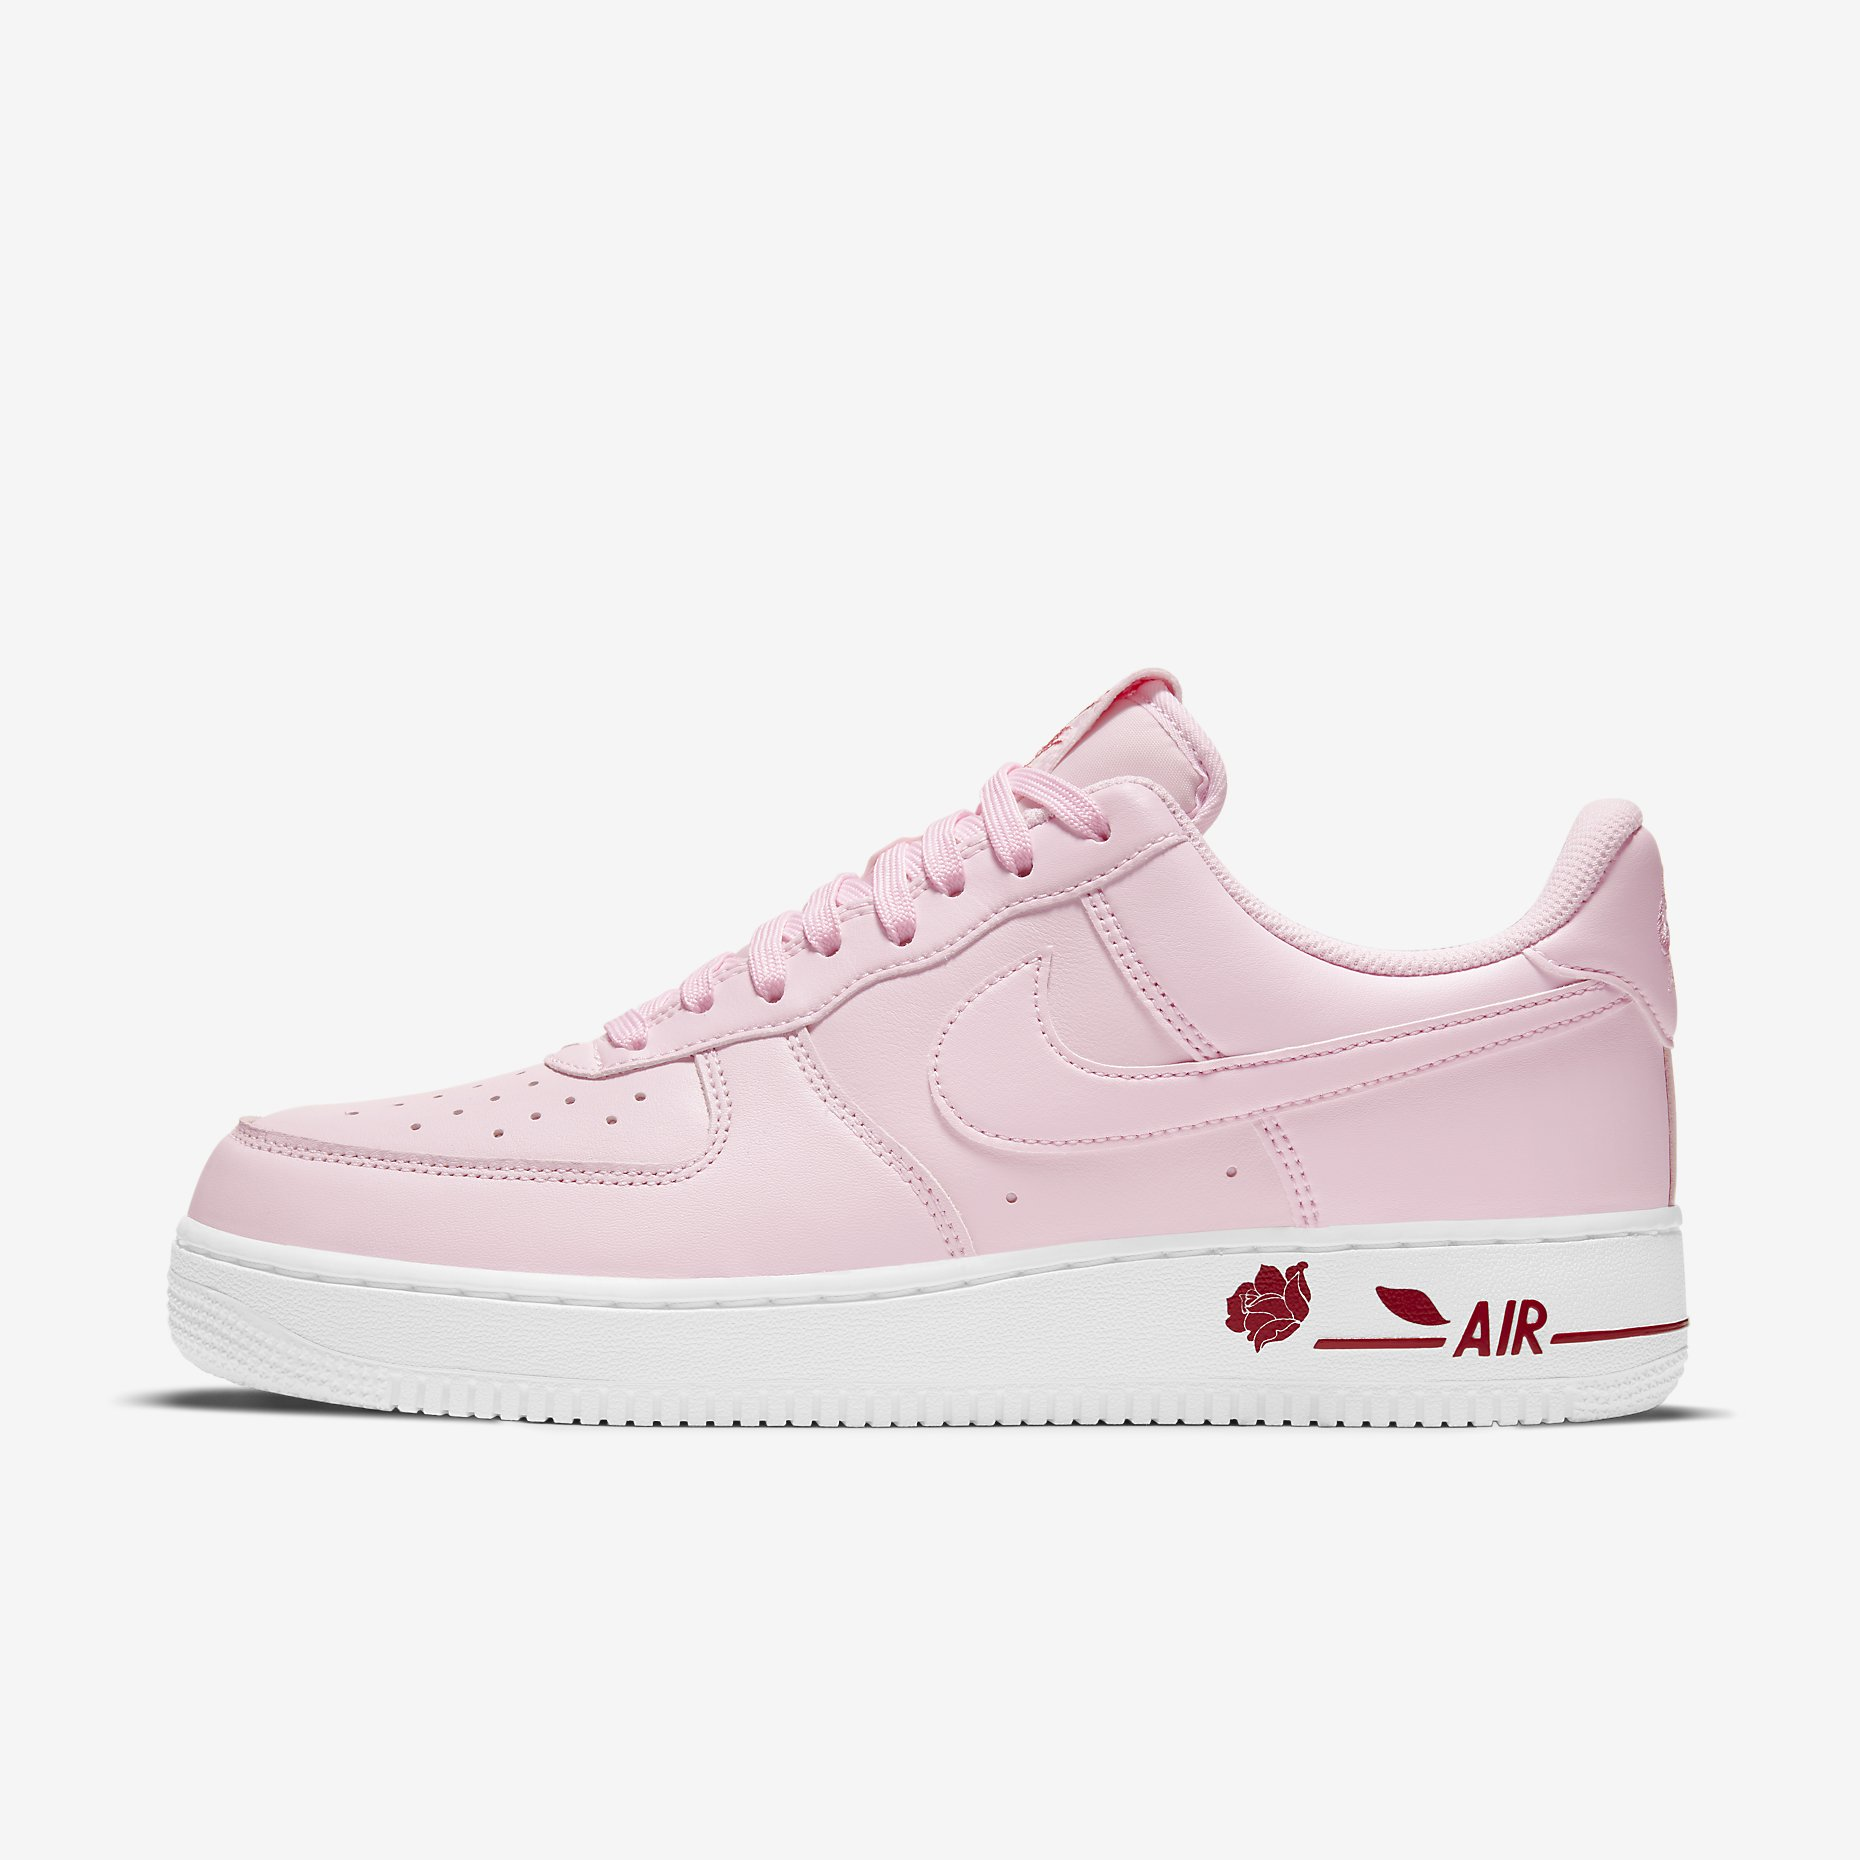 Nike Air Force 1 '07 LX 'Pink Bag'}